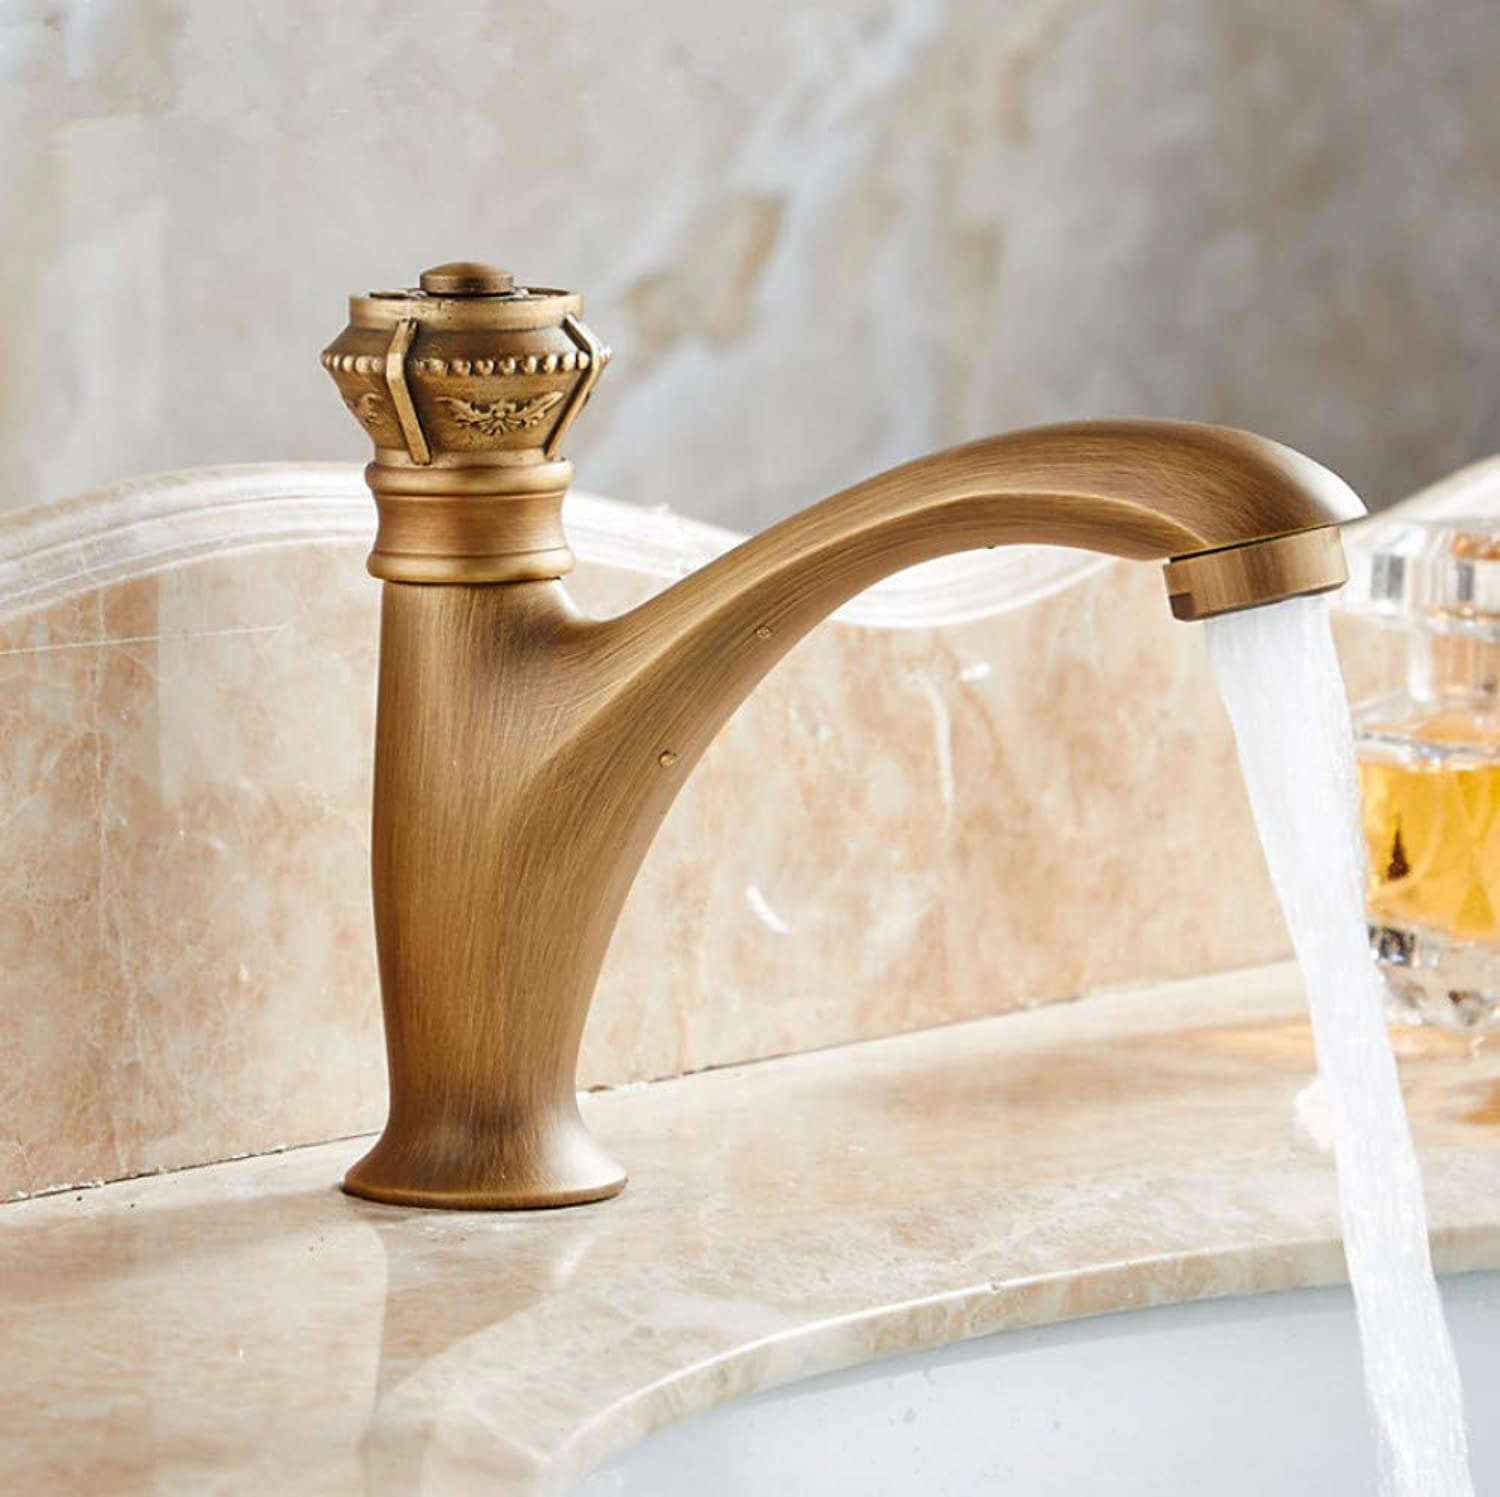 Dwthh Antique Carving Brass Taps Single Handle Deck Mount Cold Water Balcony Washing Basin Faucet